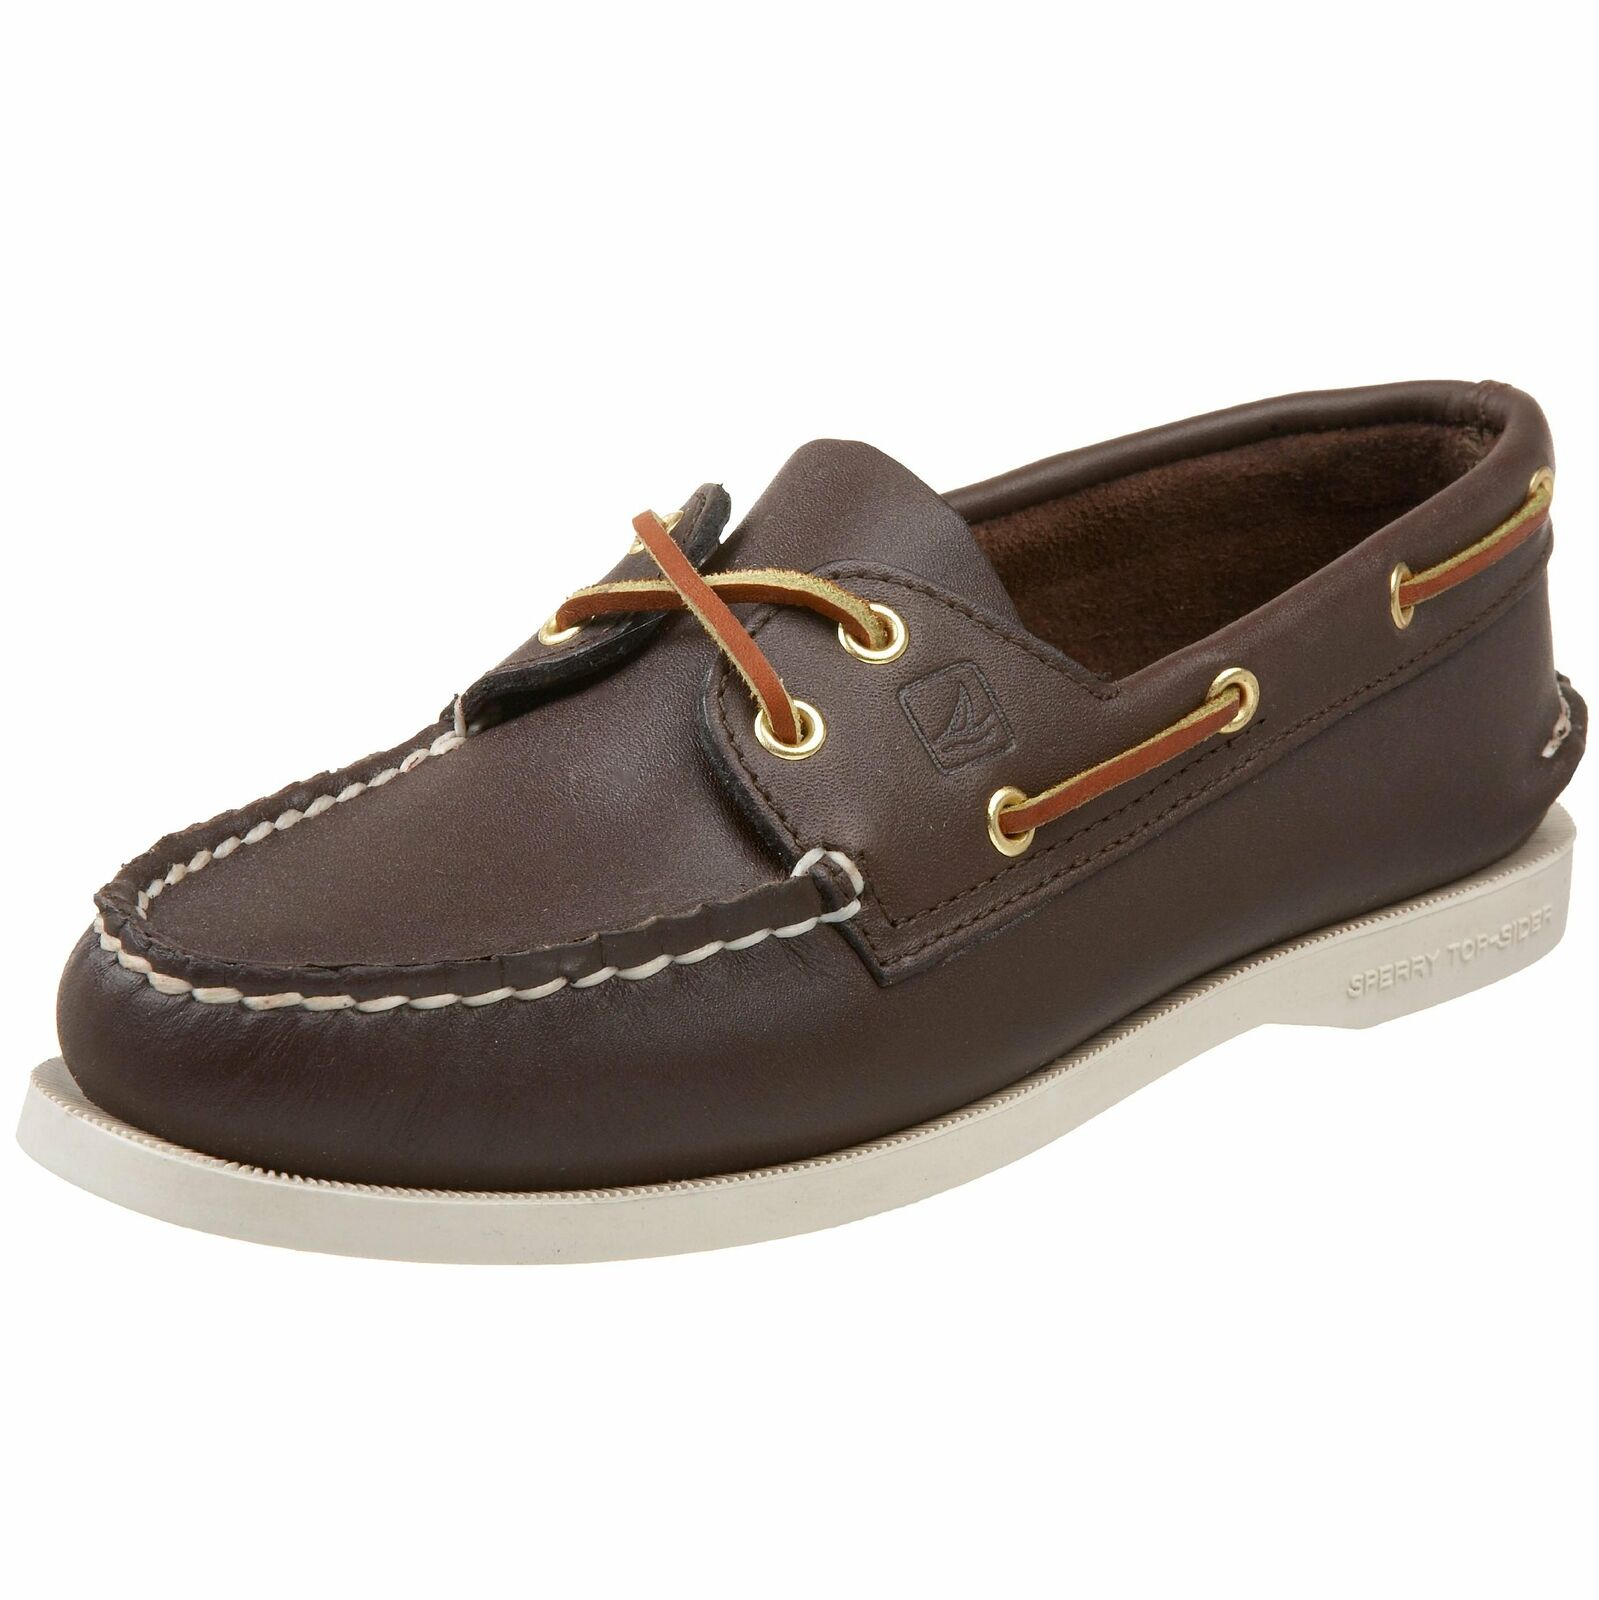 Sperry 9195017W  Top-Sider dahommes authentic original Two-Eye Boat marron chaussures